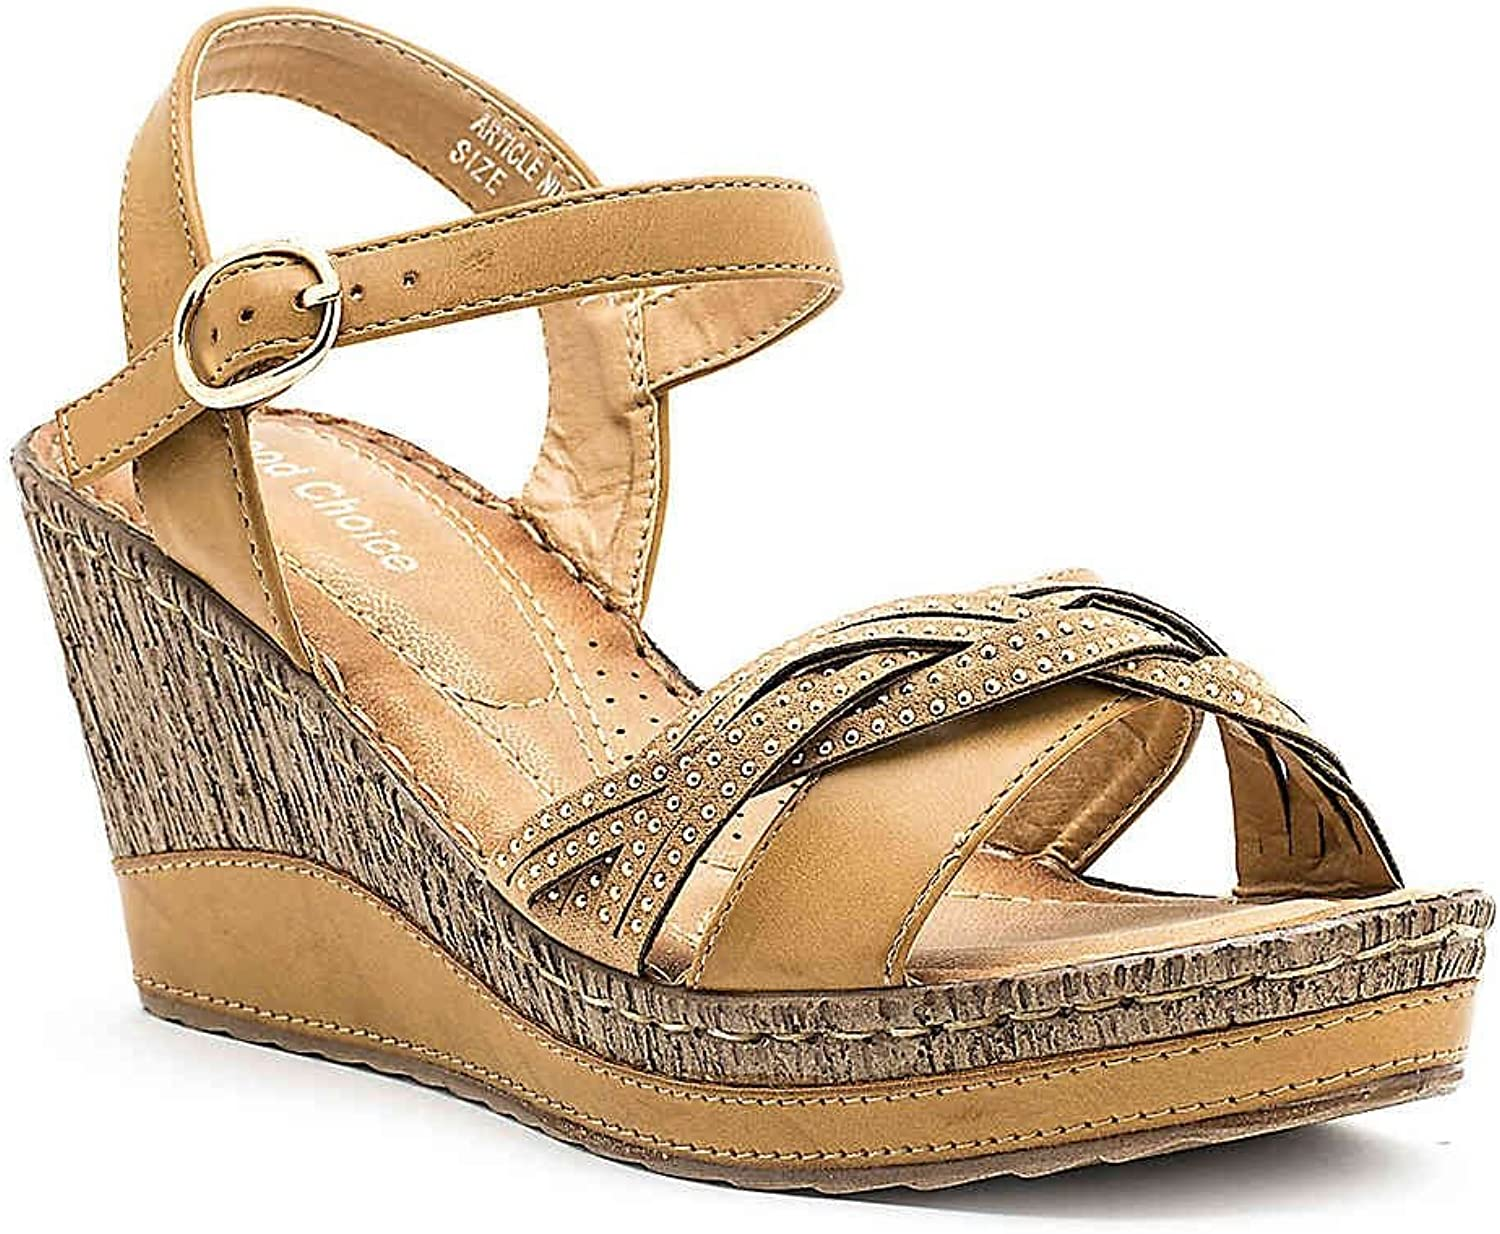 Gc shoes Moxie Platform Wedge Comfort Sandal with Ankle Strap